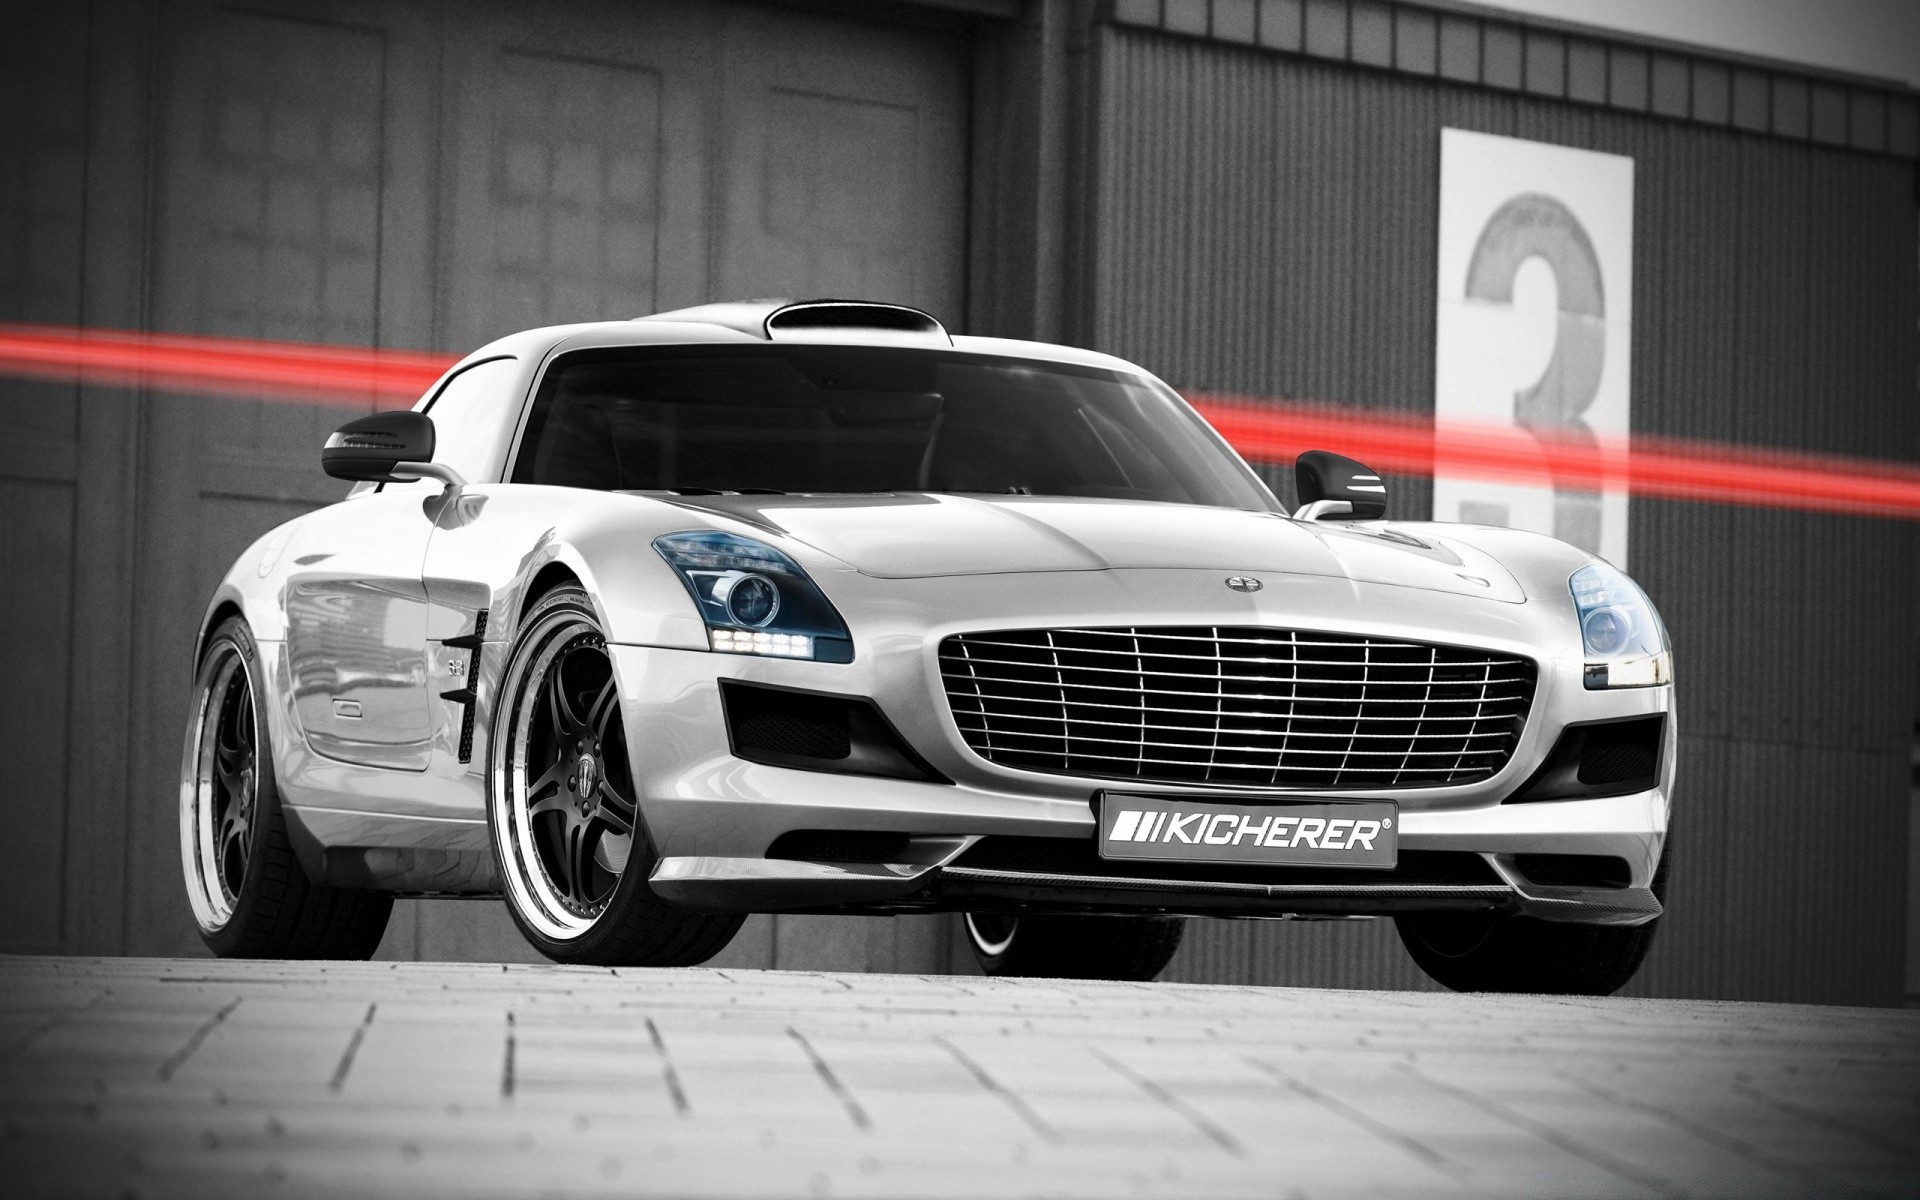 Kicherer Mercedes Benz SLS AMG